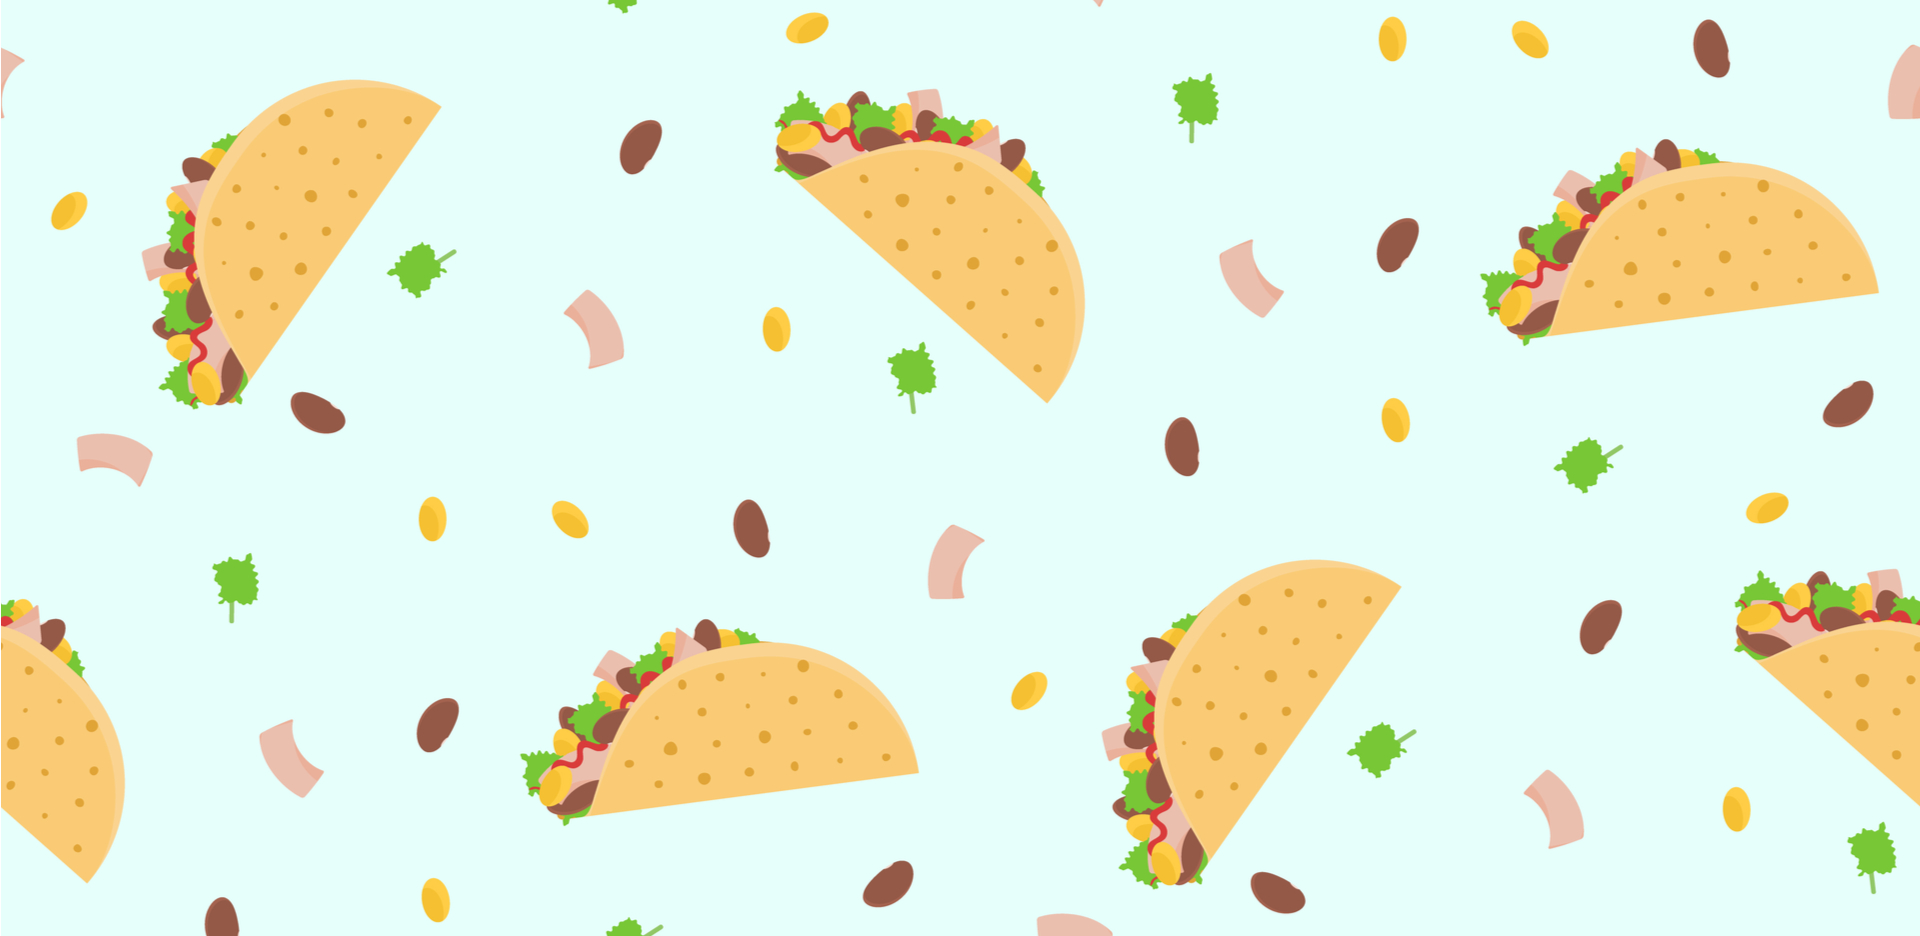 Song Id For Its Raining Tacos